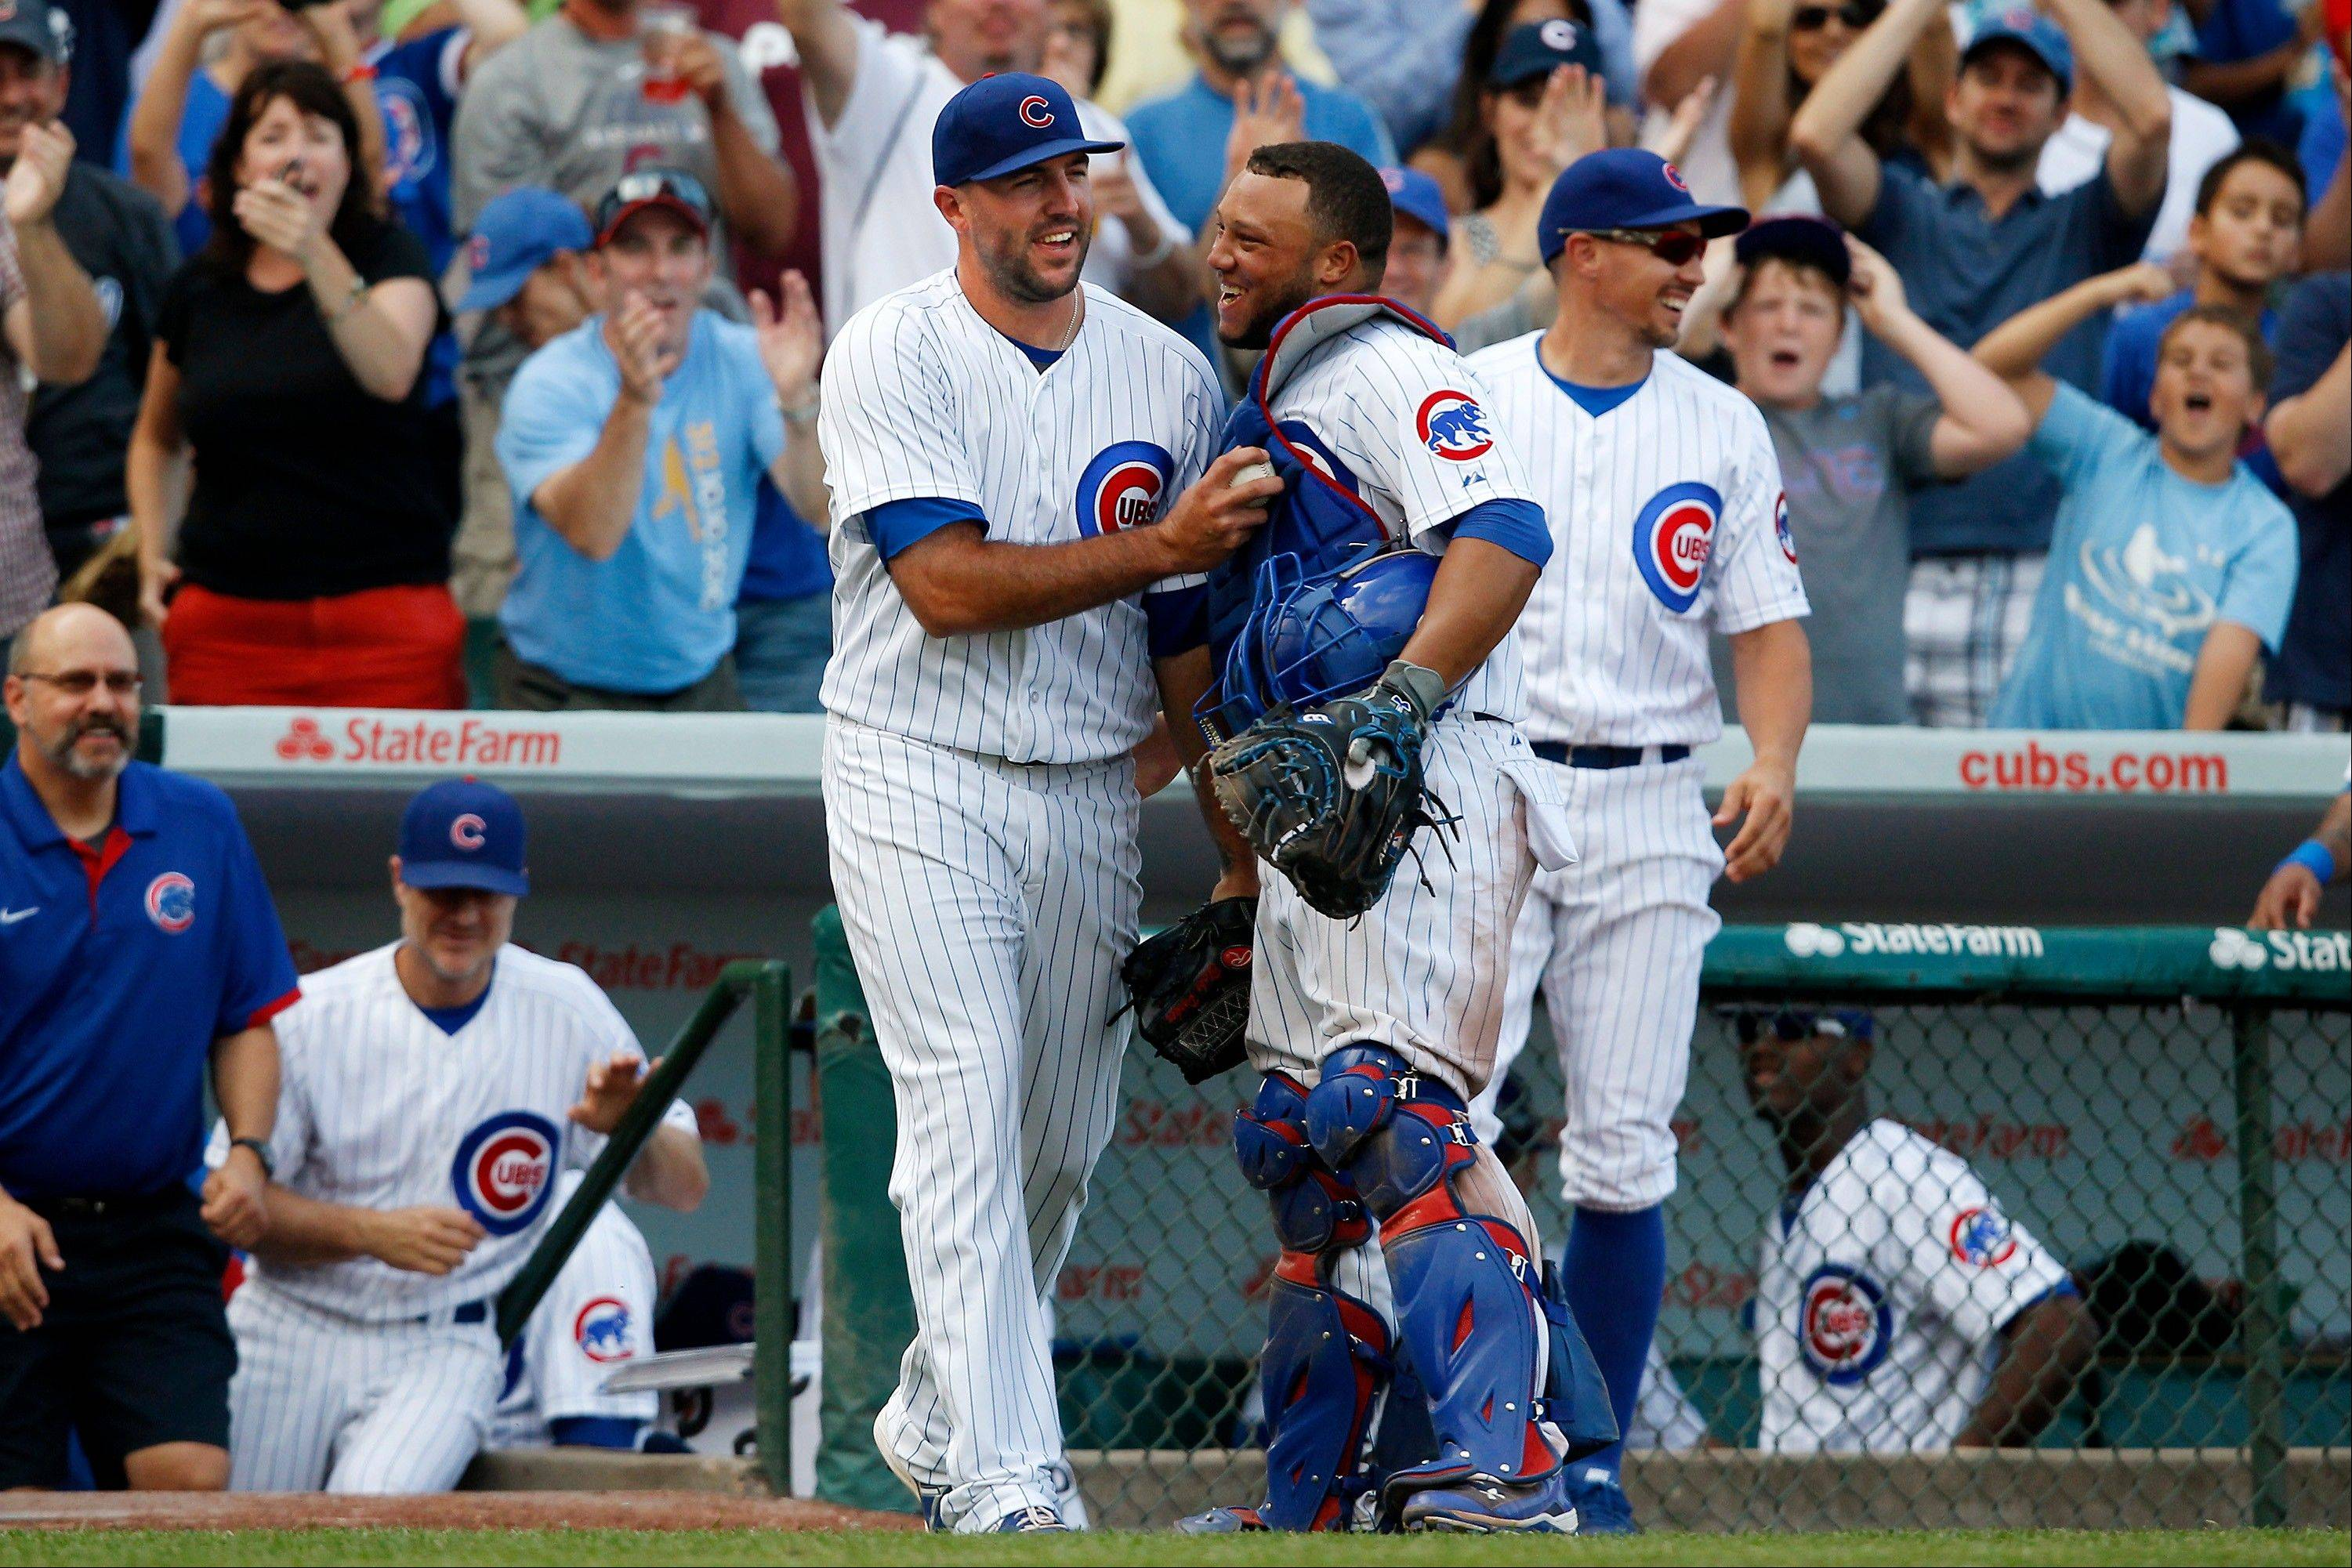 Chicago Cubs relief pitcher Blake Parker, front left, and catcher Welington Castillo celebrate after their 7-1 victory over the Philadelphia Phillies in a baseball game on Sunday, Sept. 1, 2013, in Chicago.